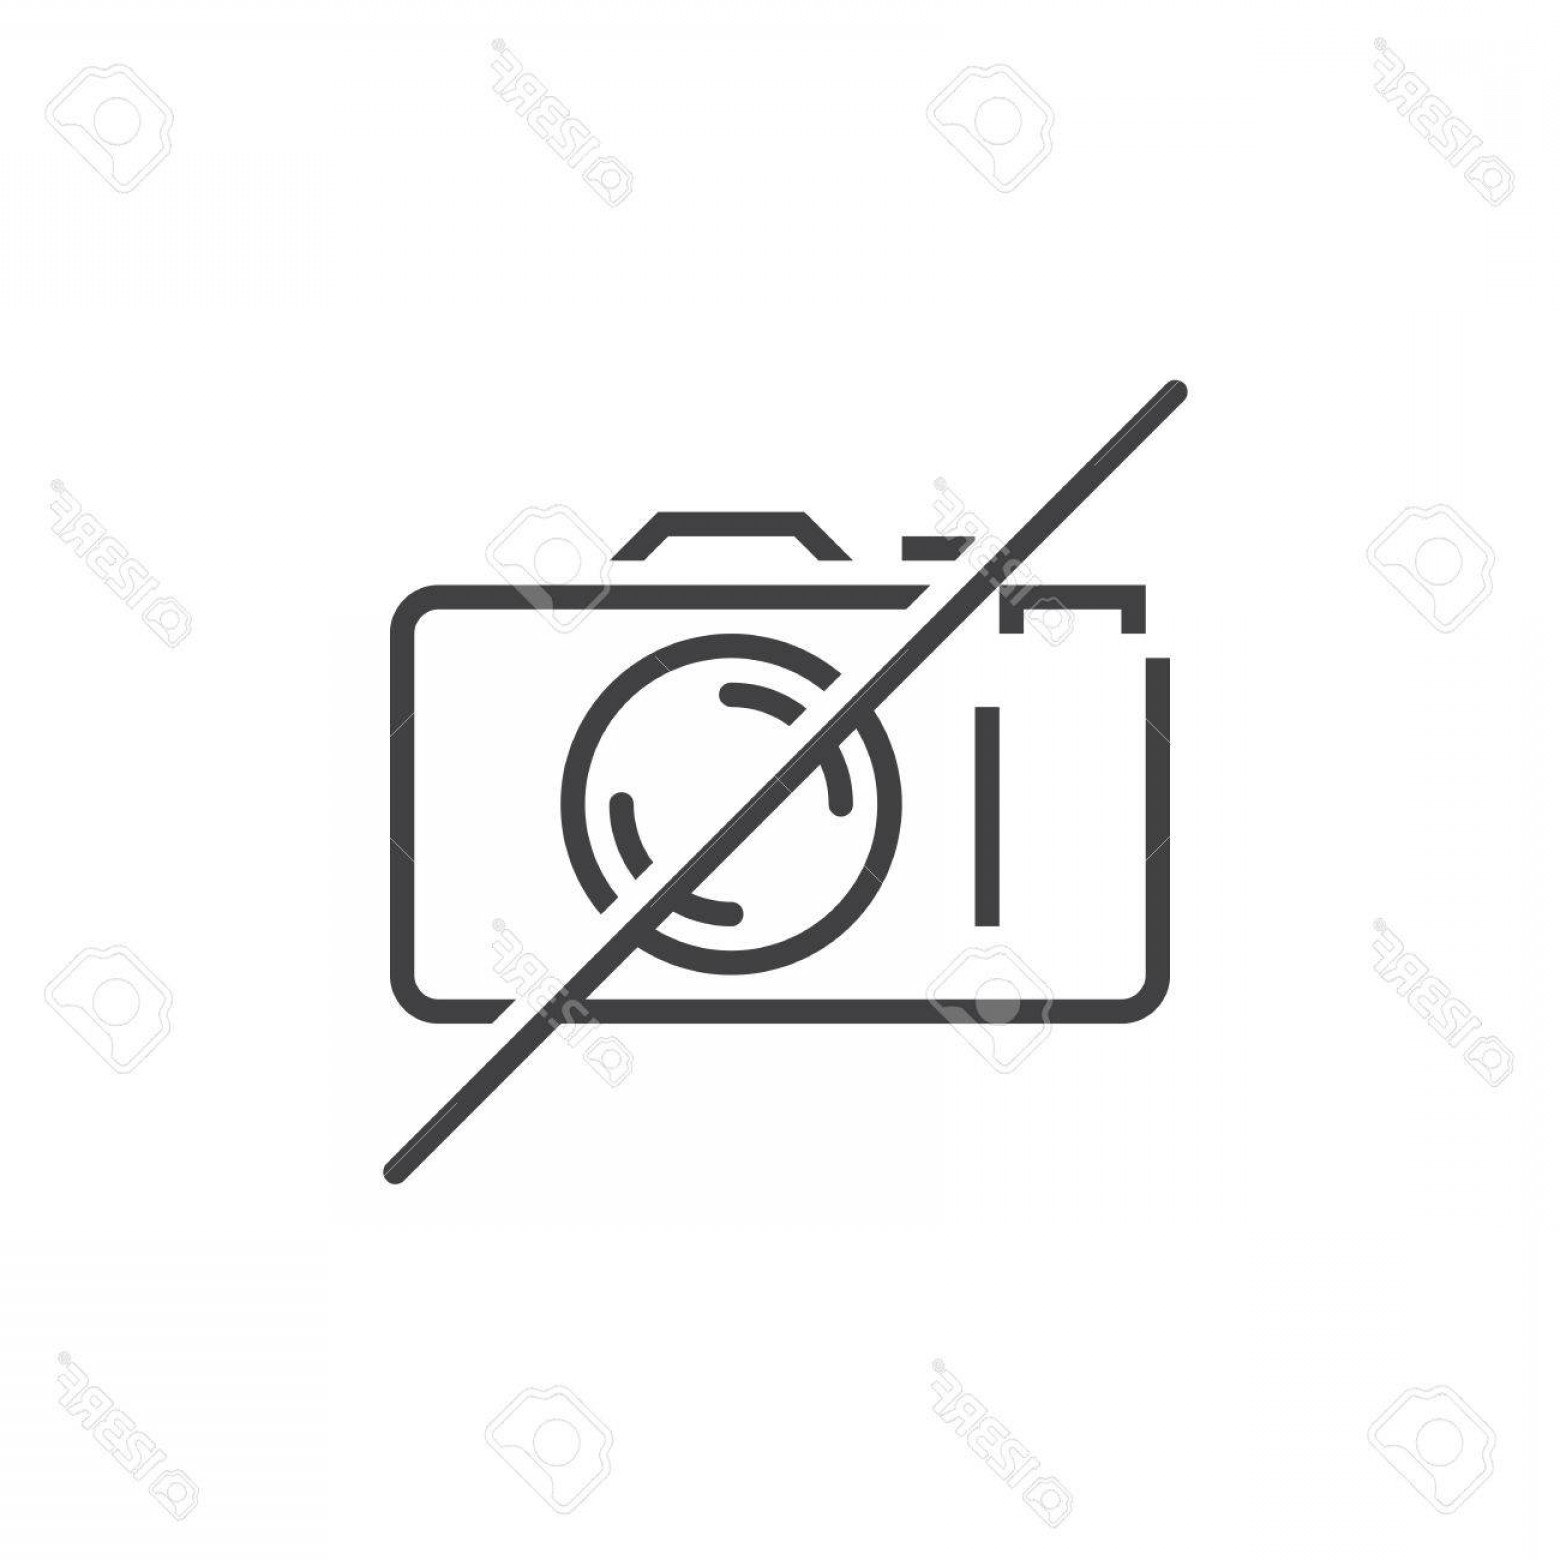 Camera Outline Vector Graphic: Photostock Vector No Photography Line Icon Forbidden To Use Camera Outline Vector Logo Linear Pictogram Isolated On Wh